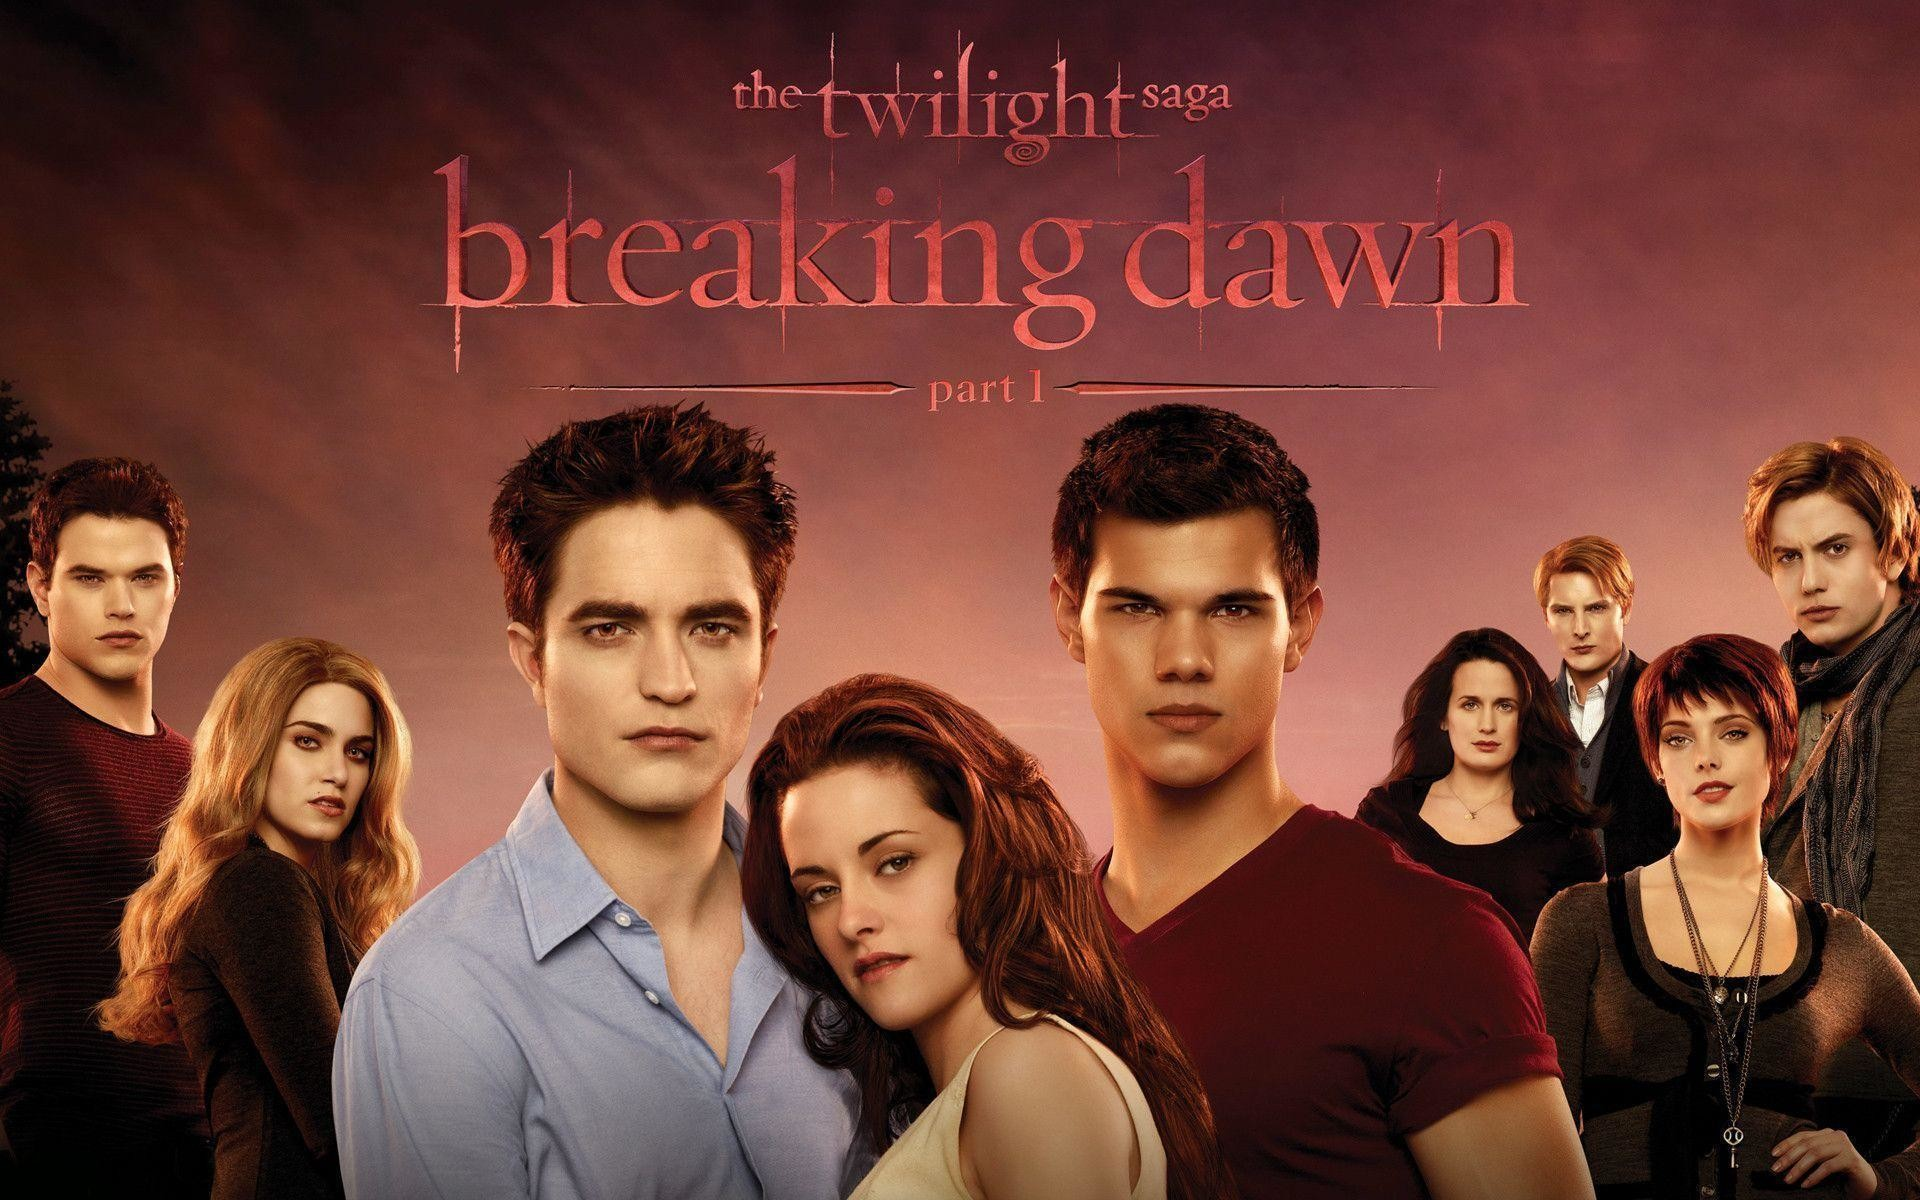 Twilight breaking dawn wallpapers 68 images - Twilight breaking dawn wallpaper ...